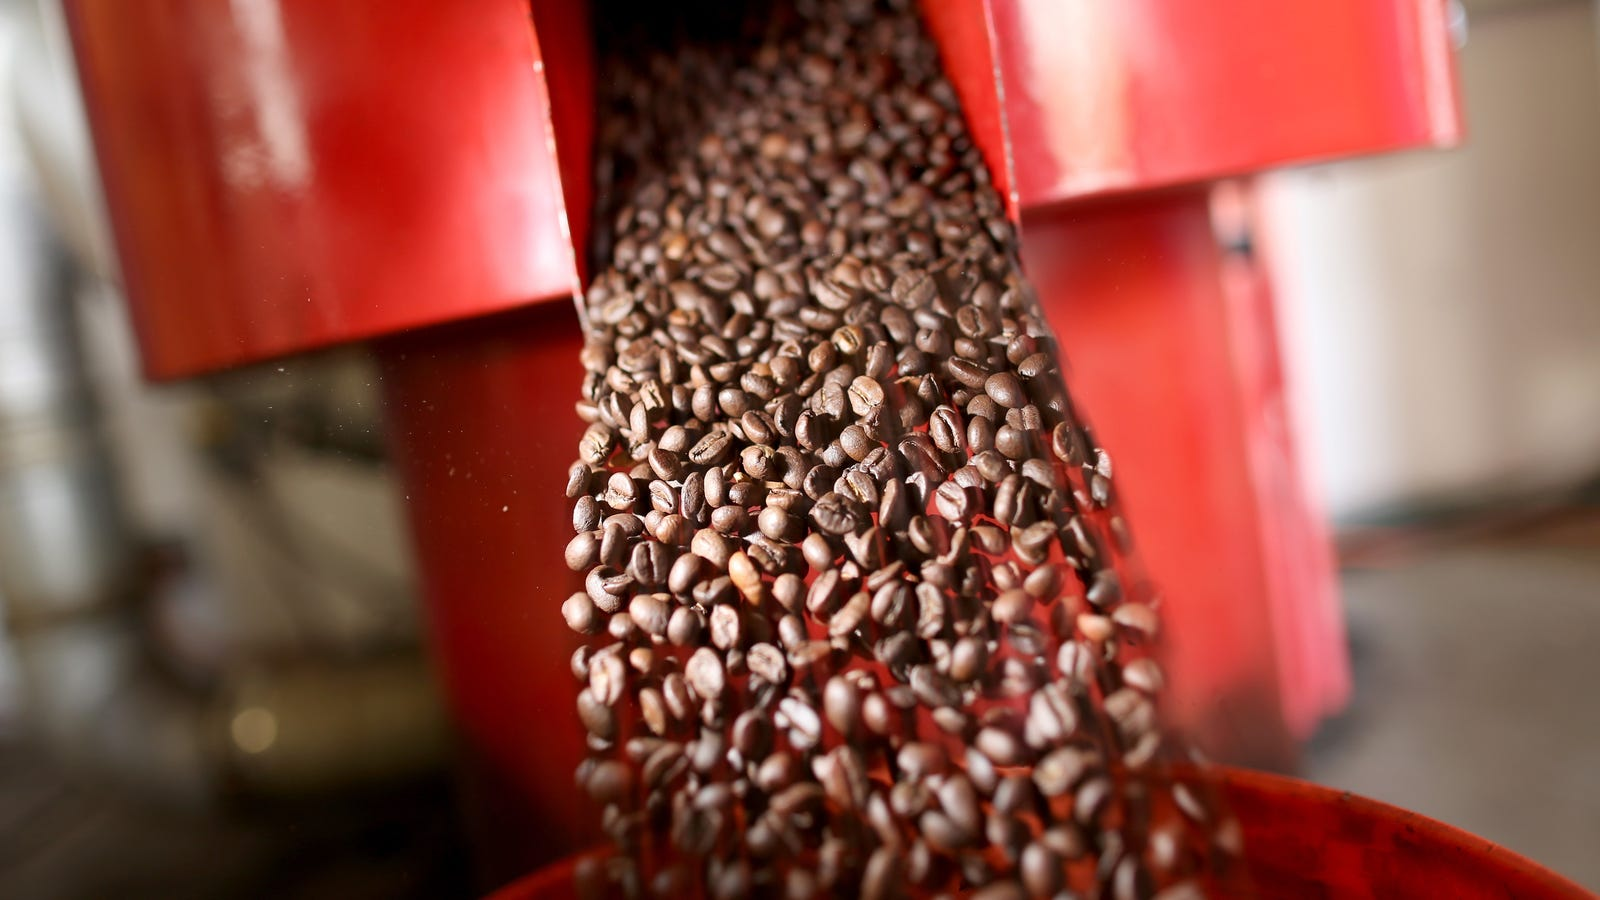 What's the best way to keep coffee beans fresh?